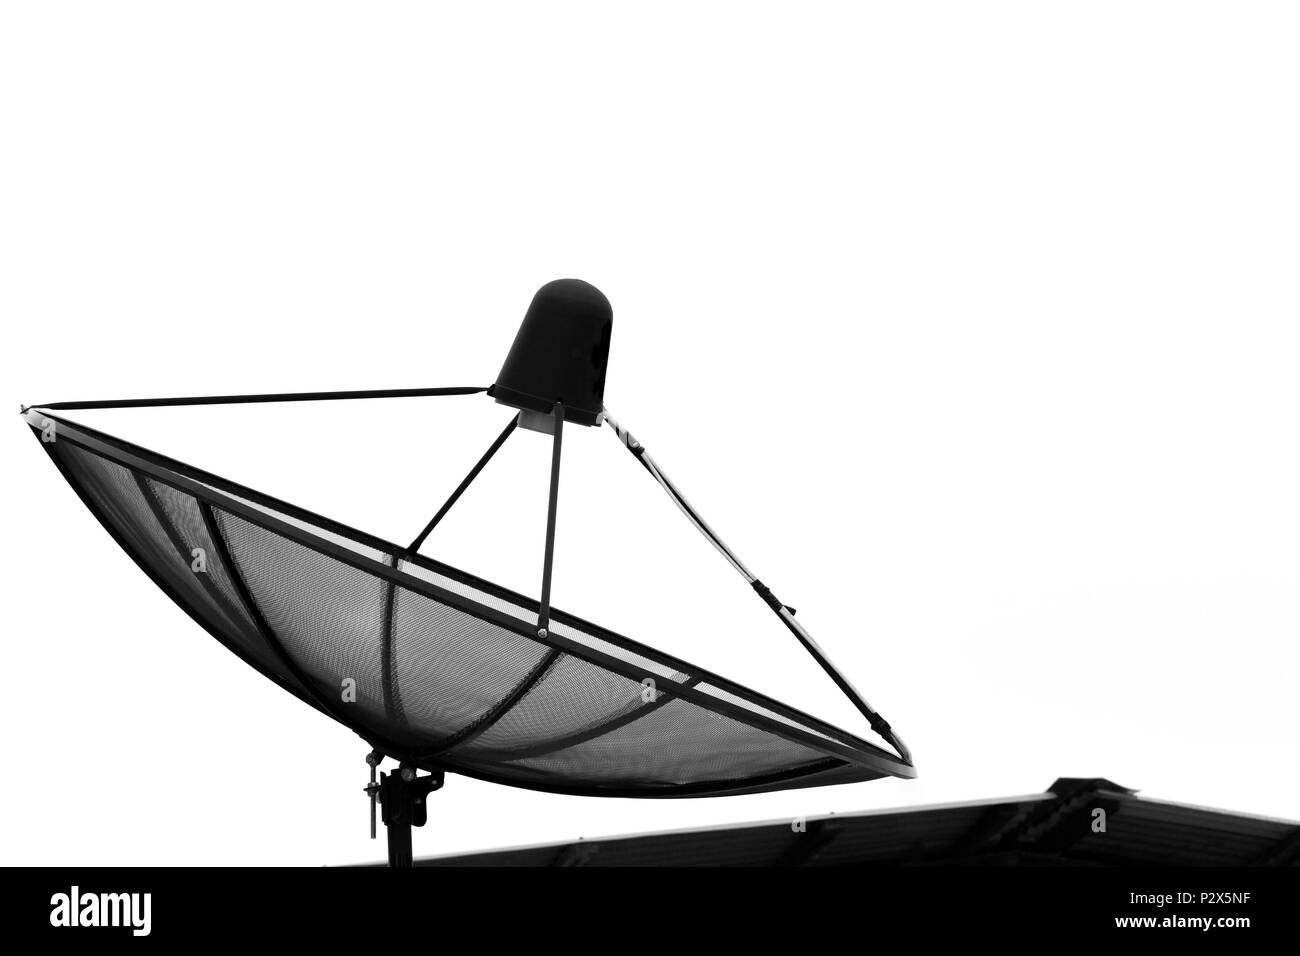 Satellite dish for communication broadcast on roof with white background. - Stock Image